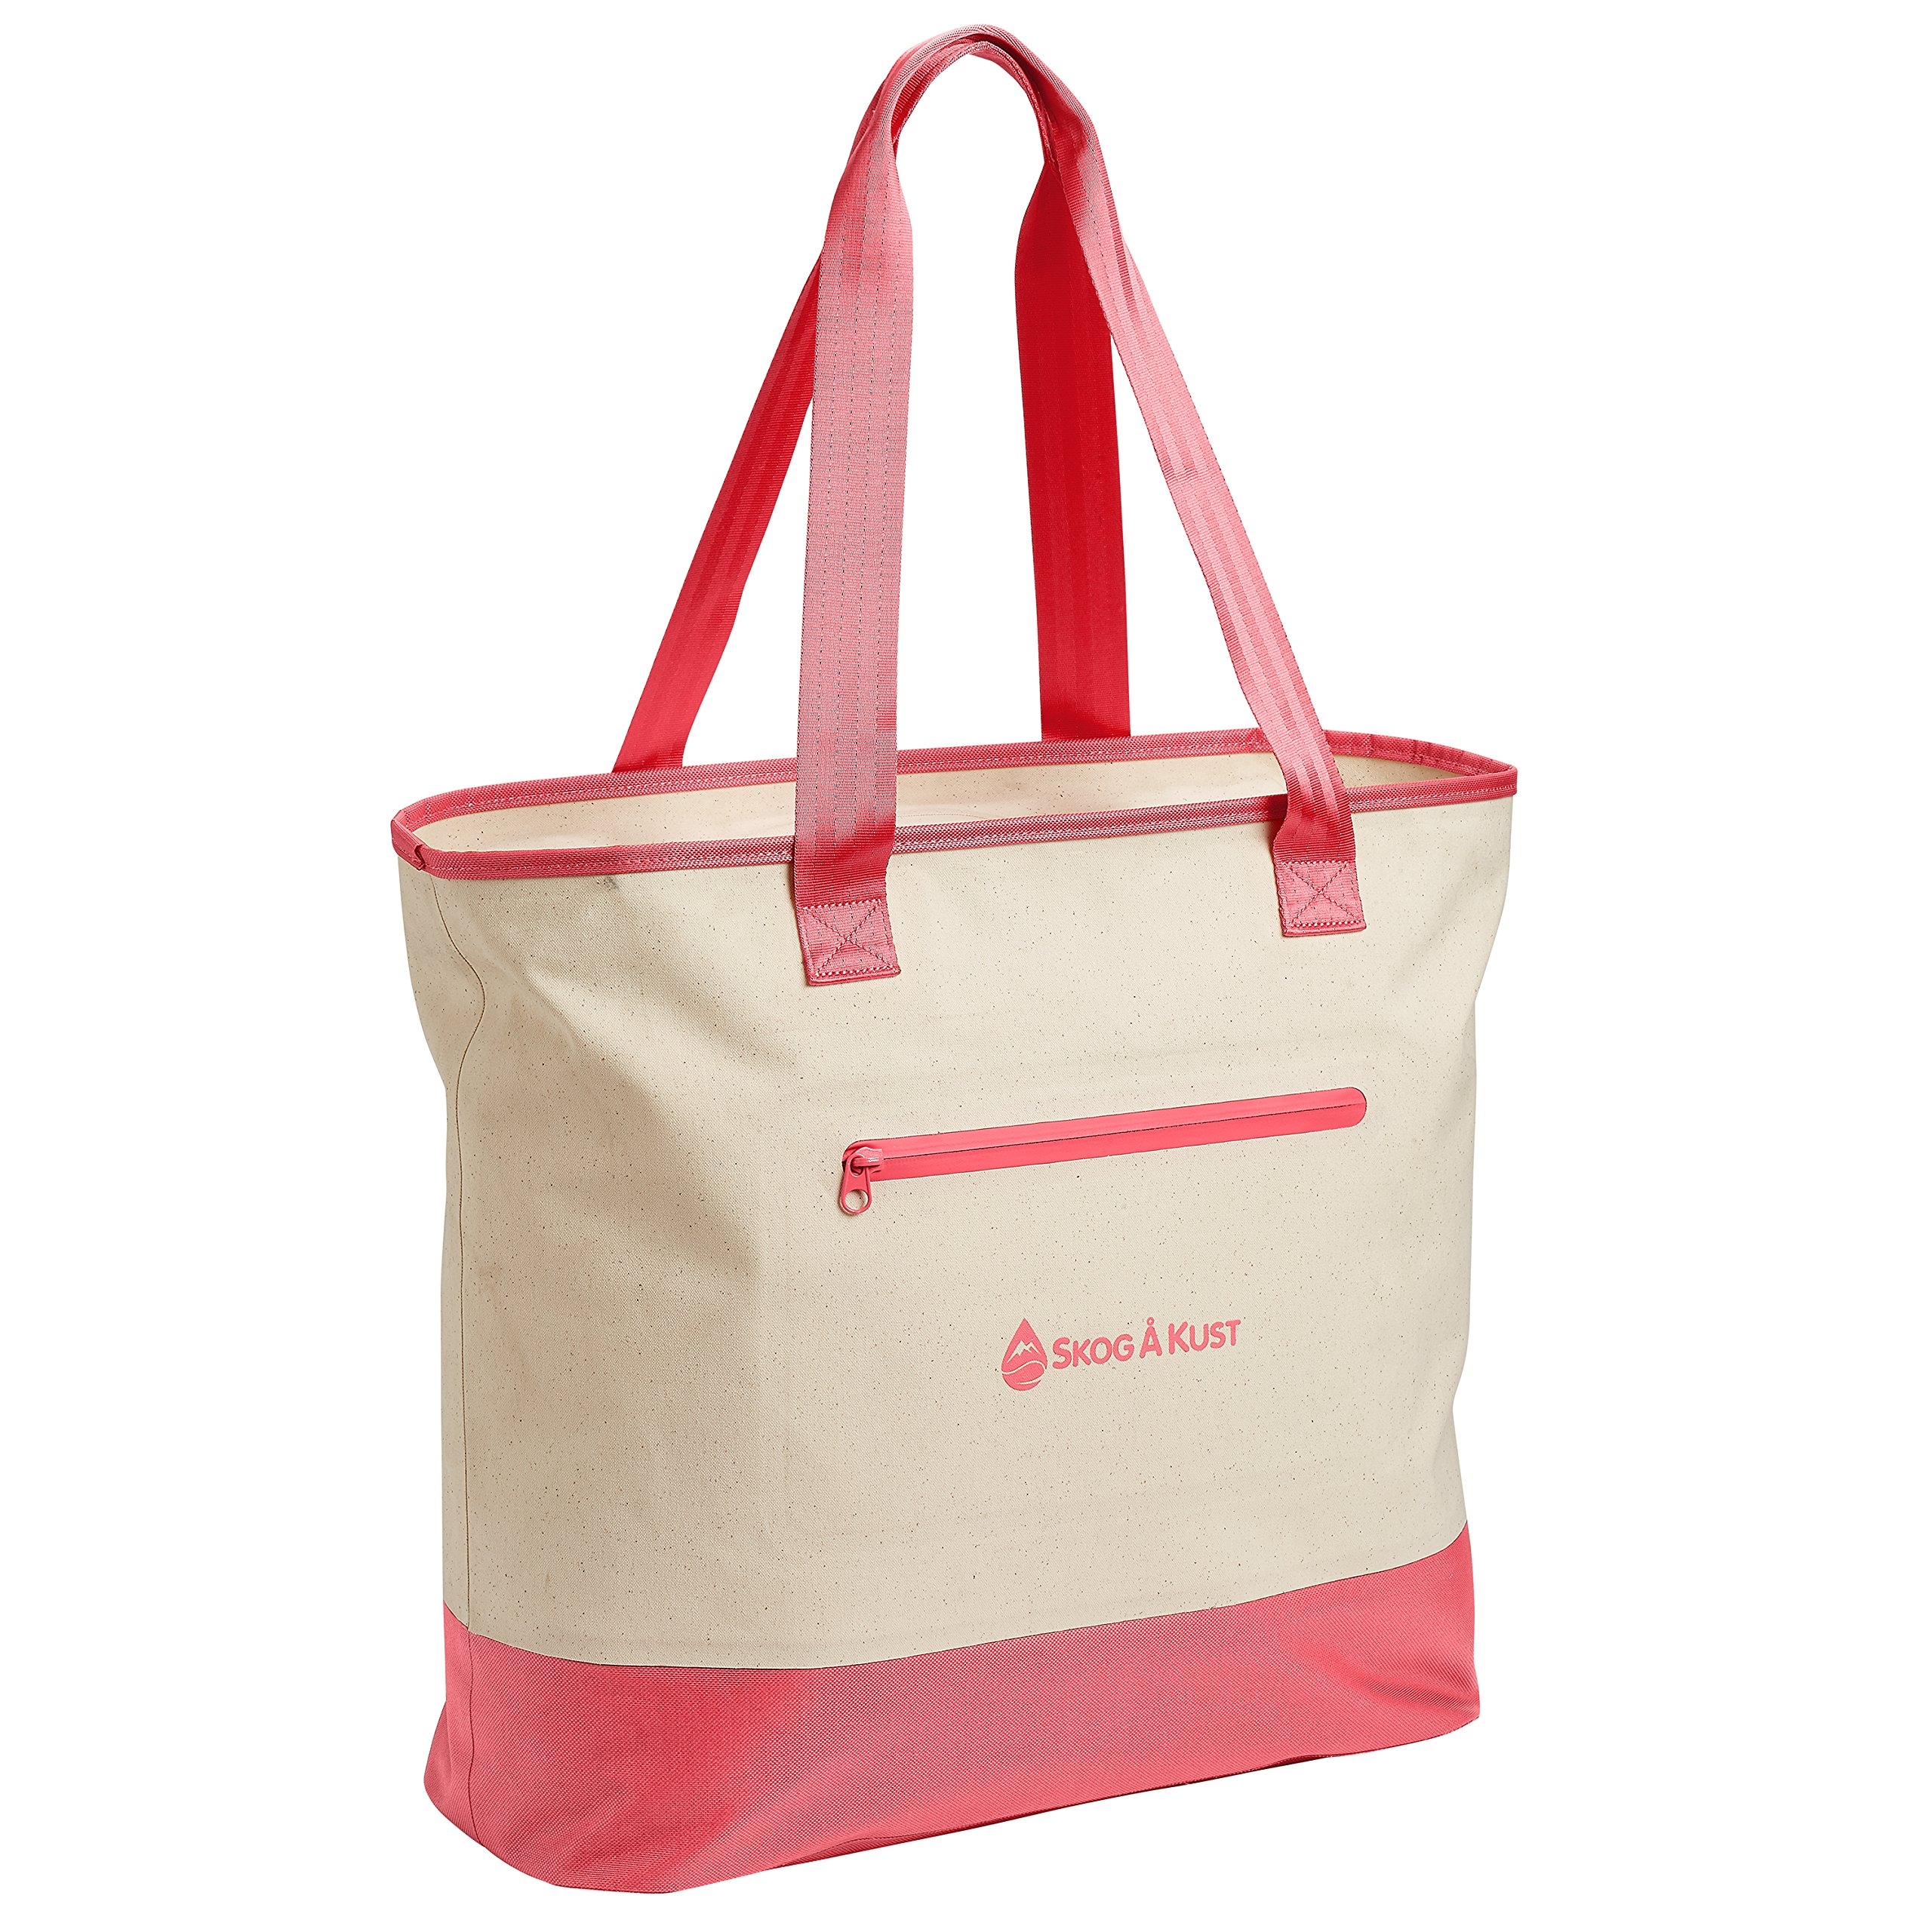 Såk Gear ToteSåk | 100% Waterproof Tote Bag with Airtight Zipper | Interior and Exterior Pockets Great for Organization | Classic, Sophisticated Design | TPU-Coated Canvas Beach Bag | Coral Pink